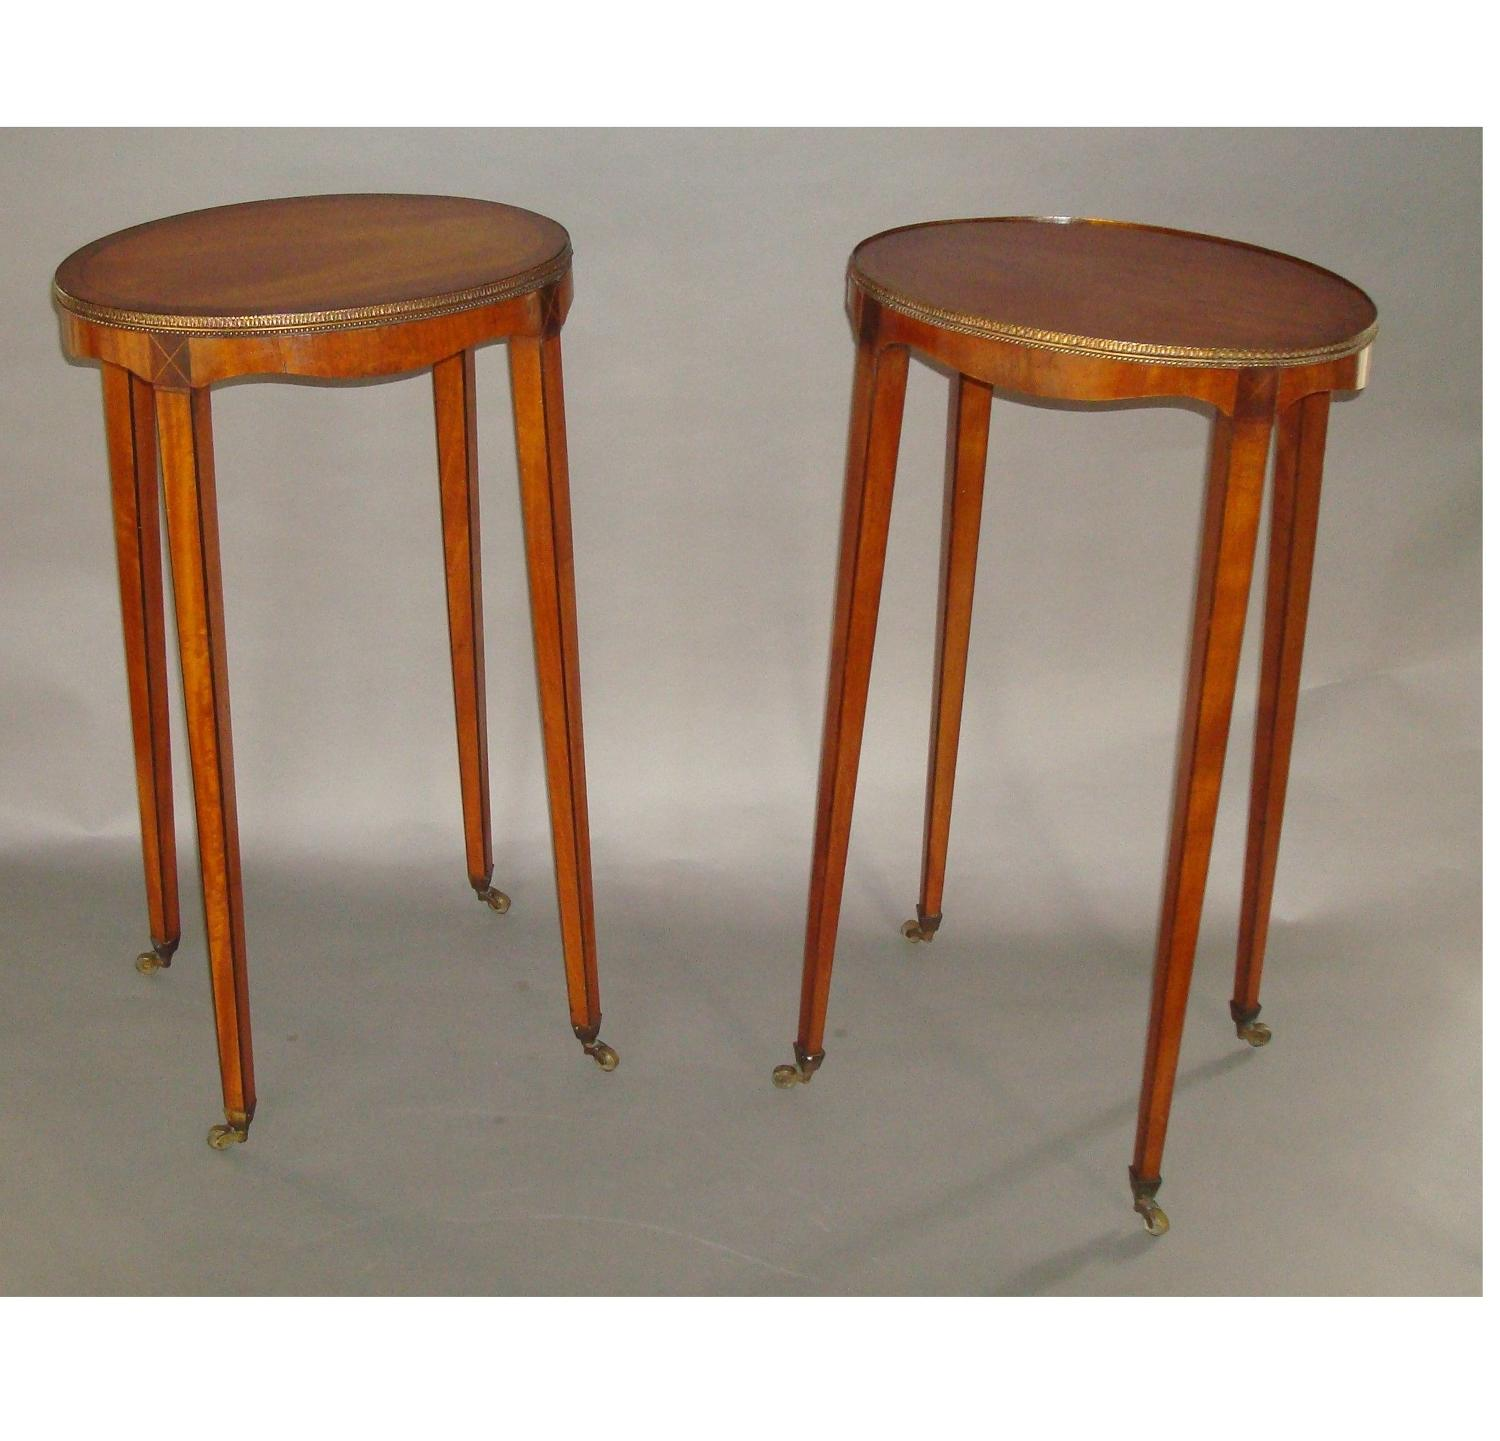 George III matched pair of satinwood urn stands